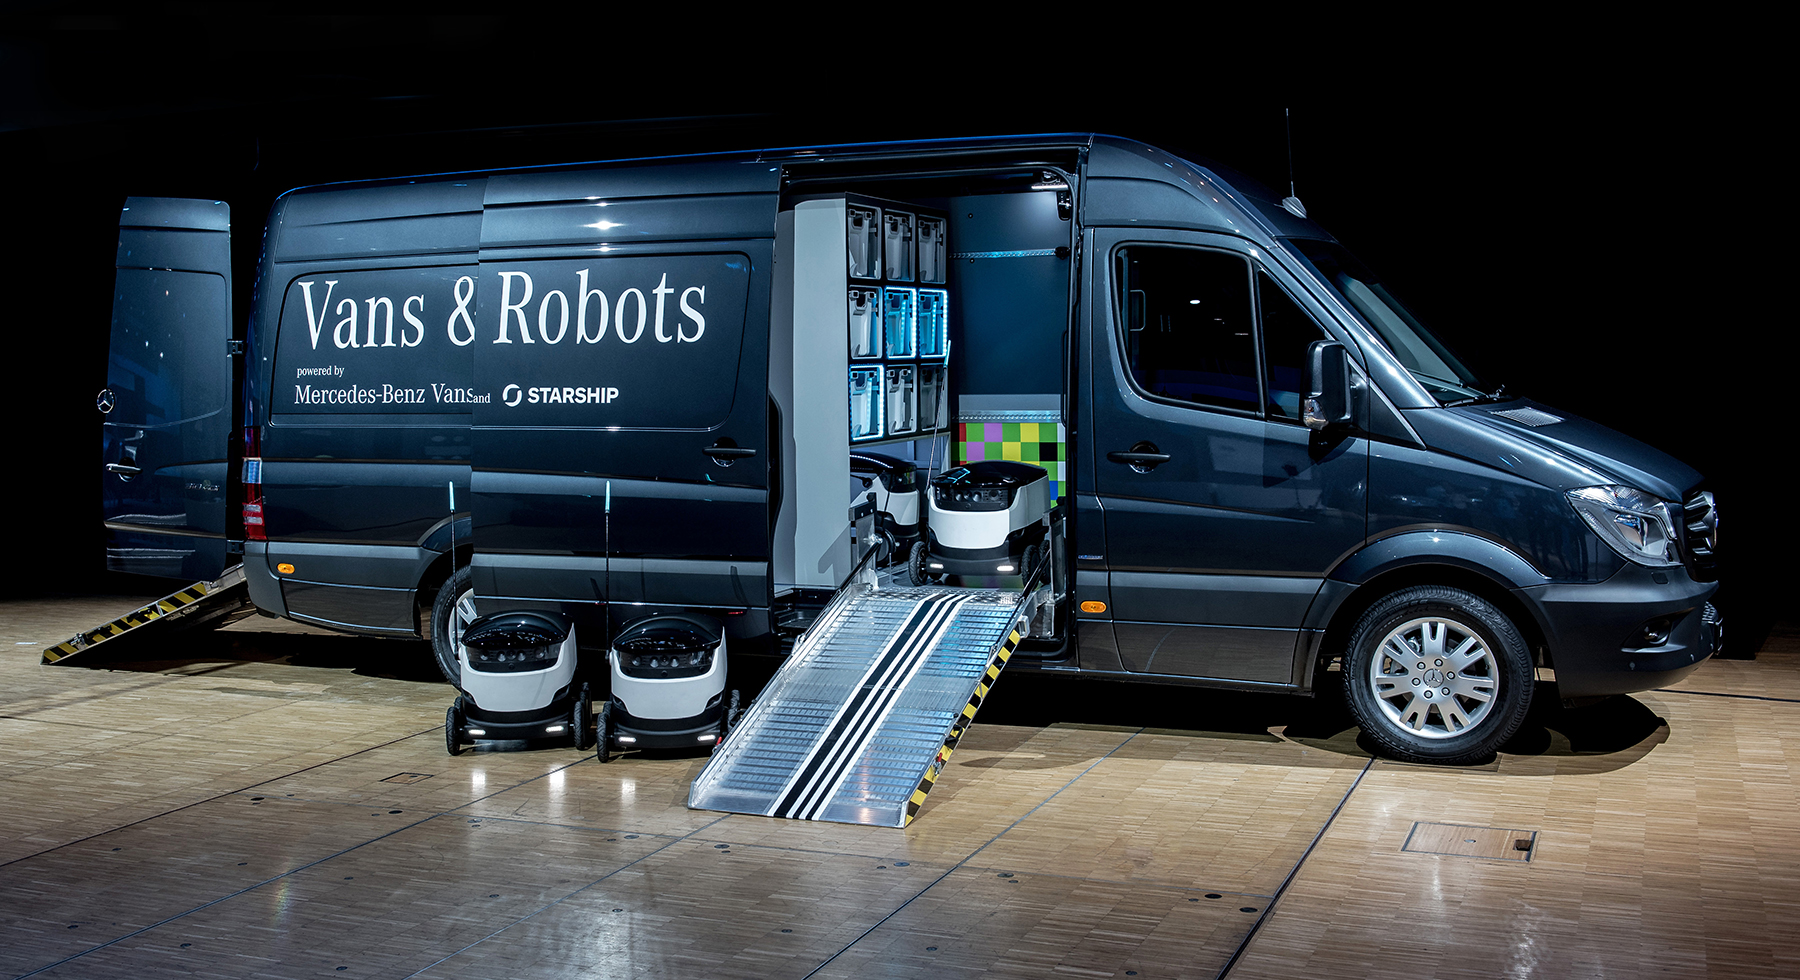 Mercedes benz vans e i robot per le consegne a domicilio for Mercedes benz work vans